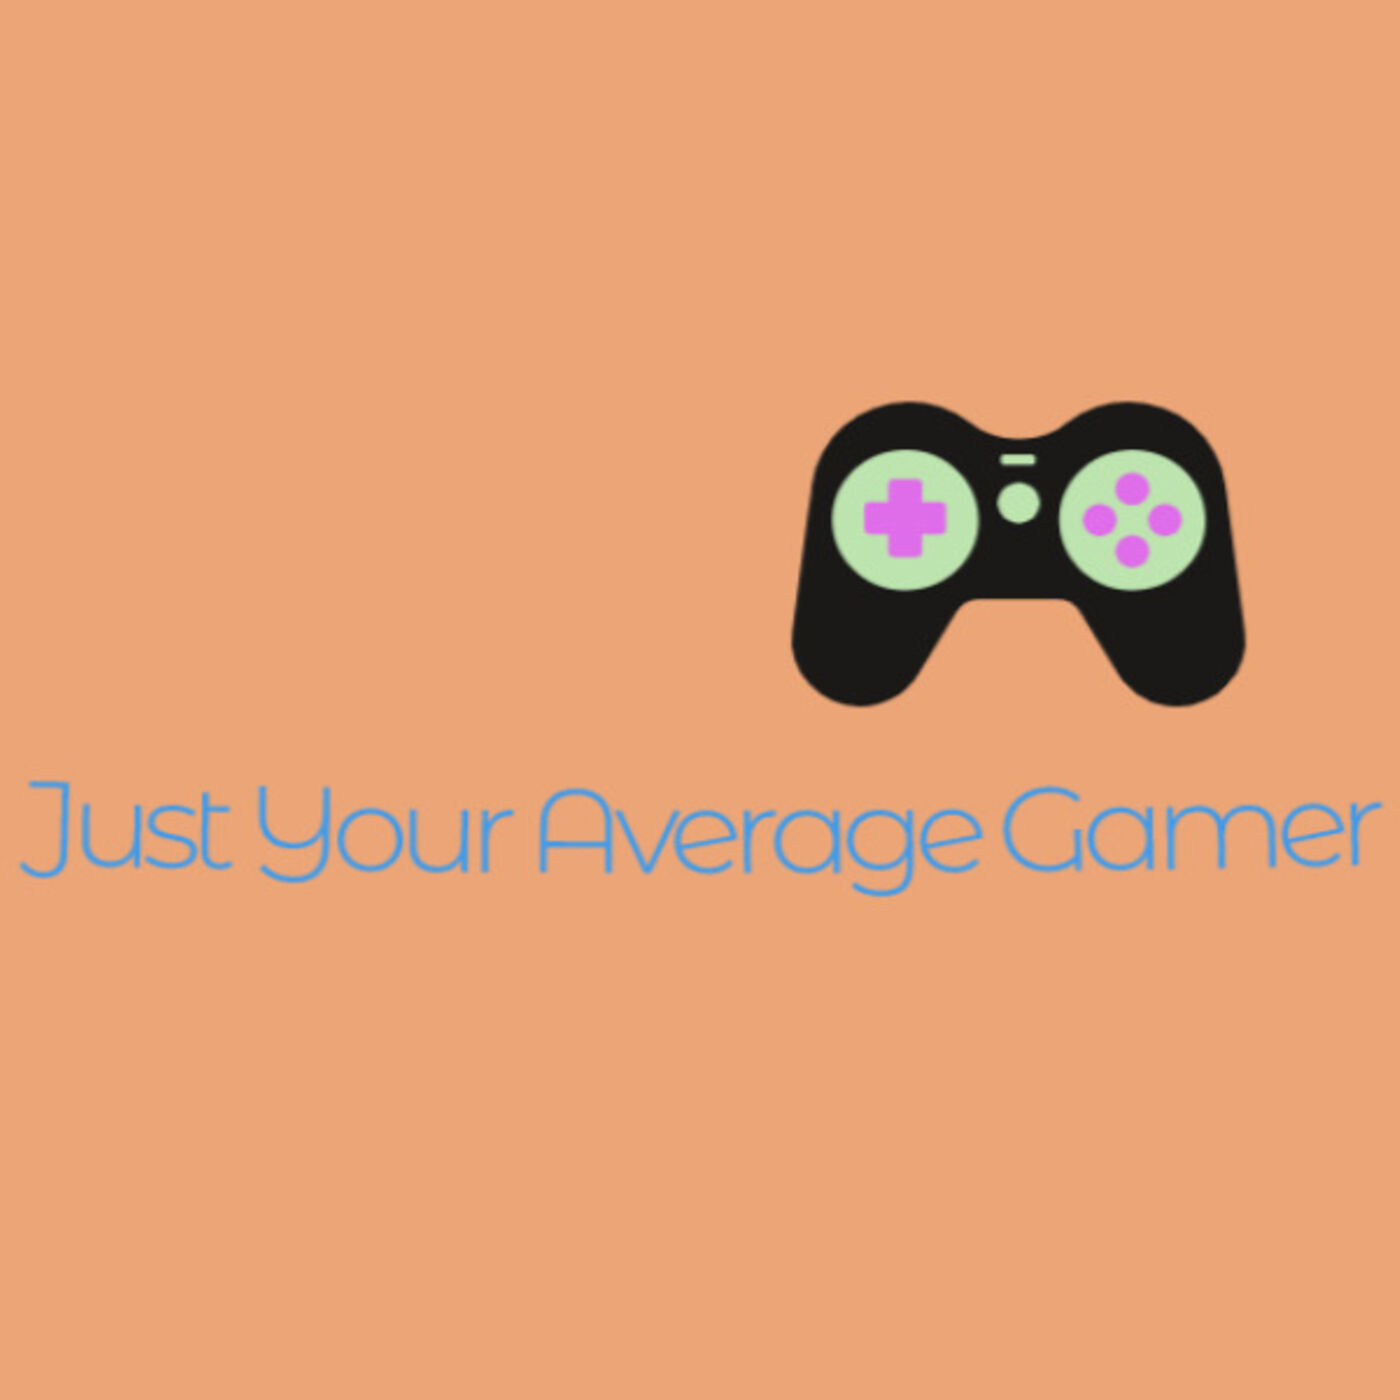 Ep. 0.5: Introducing the Just Your Average Gamer Podcast!